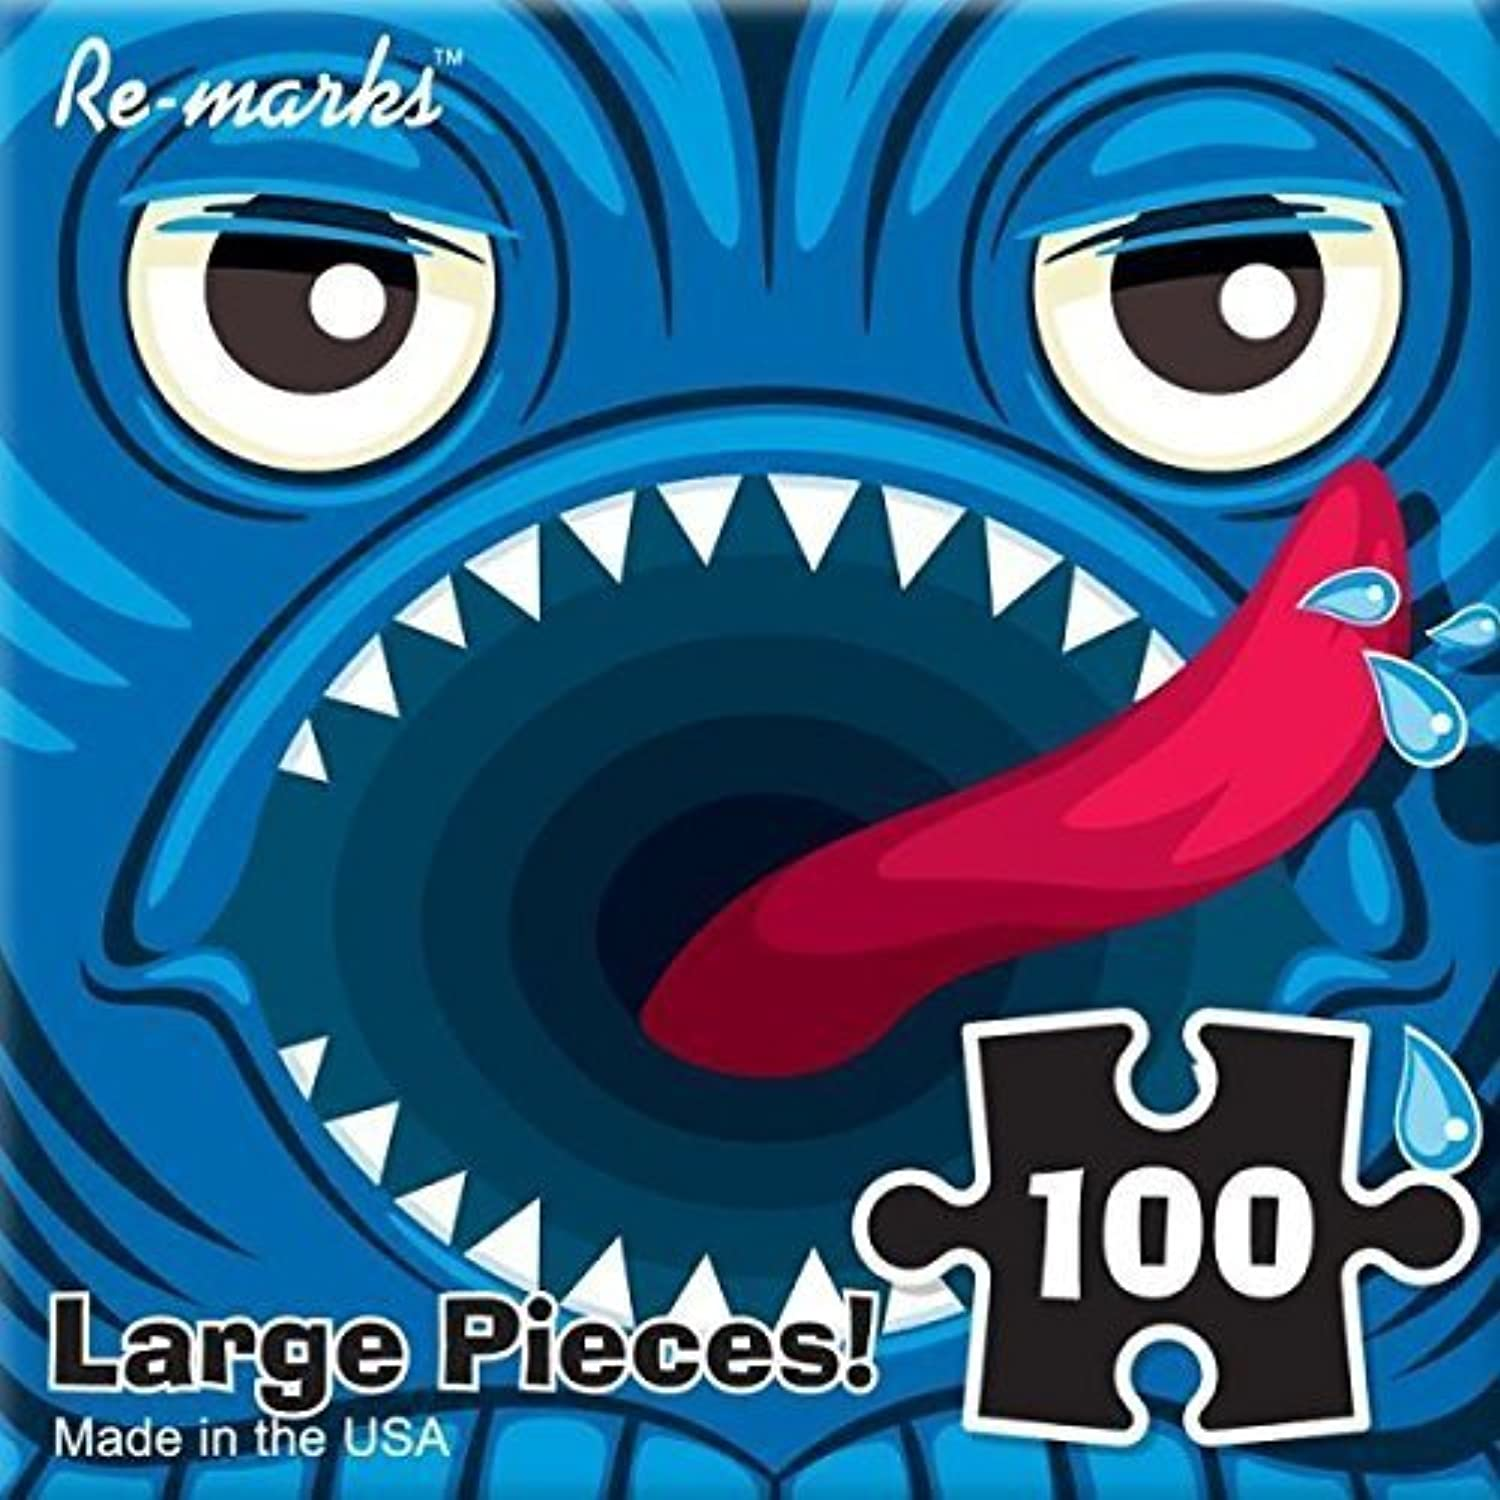 Blau Monster 100 Piece Re-marks Puzzle Monster Series by Re-Marks